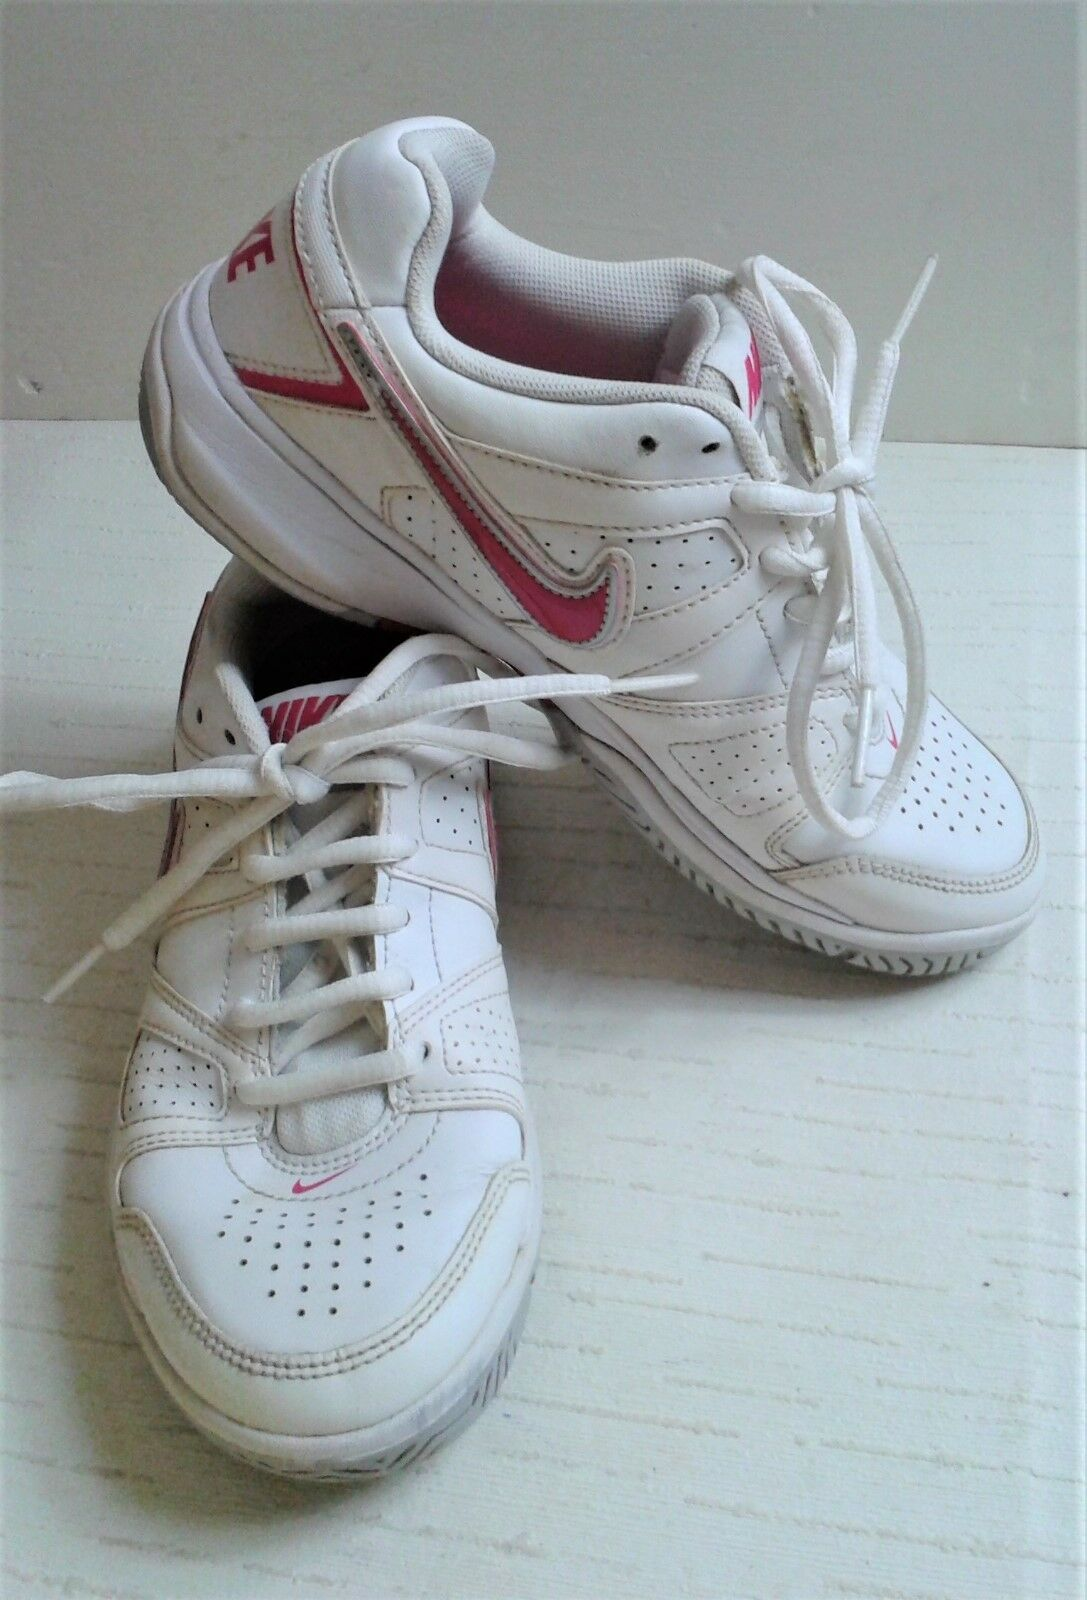 Nike City Court Ladies Trainers Pink Trim. Excellent Condition. 6 images Special limited time